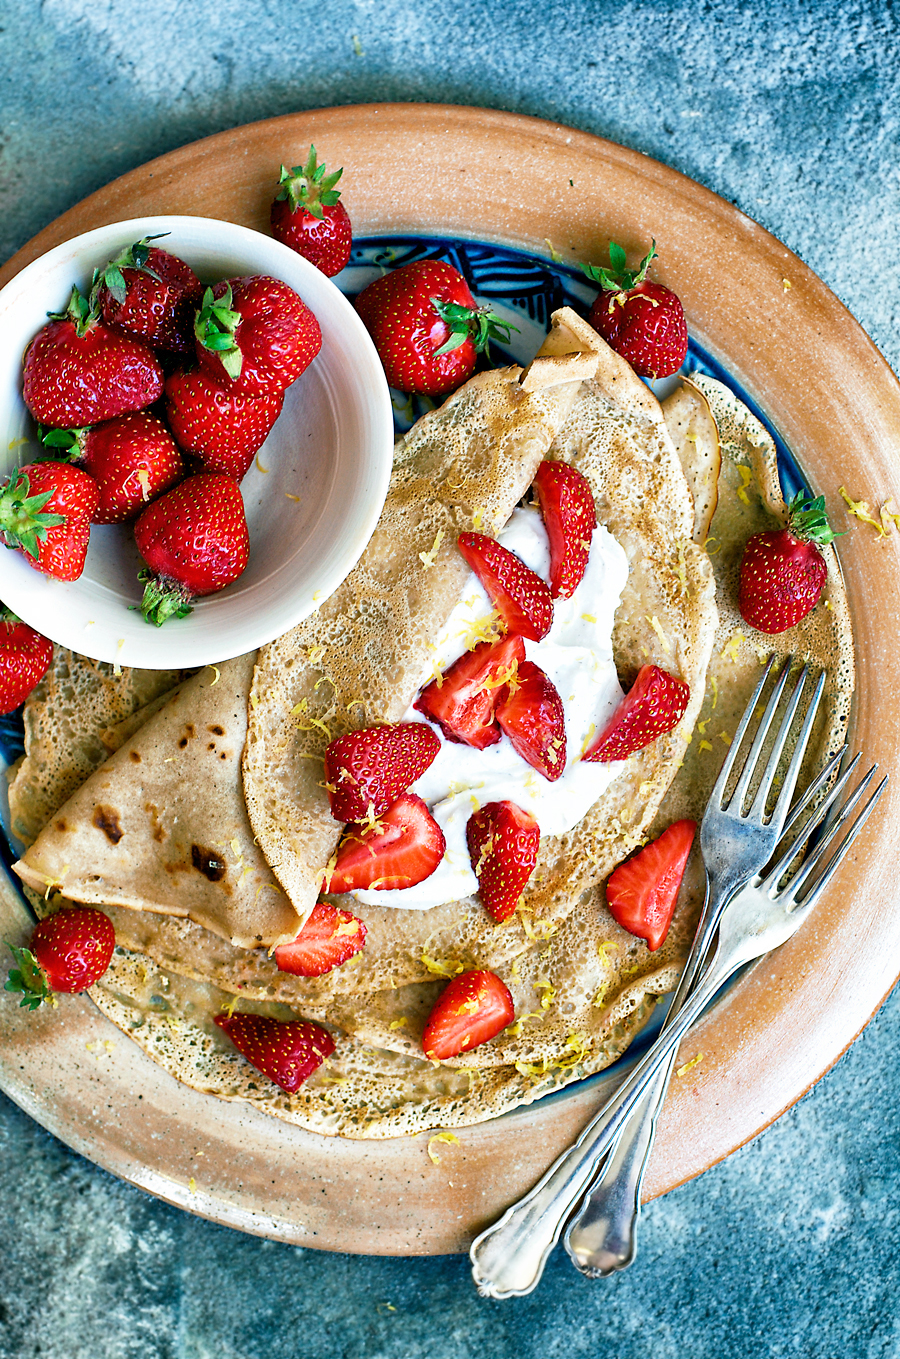 These healthy vegan crepes made with spelt flour and a little coconut sugar are surprisingly simple and easy to make. If you can make pancakes, you can make these!